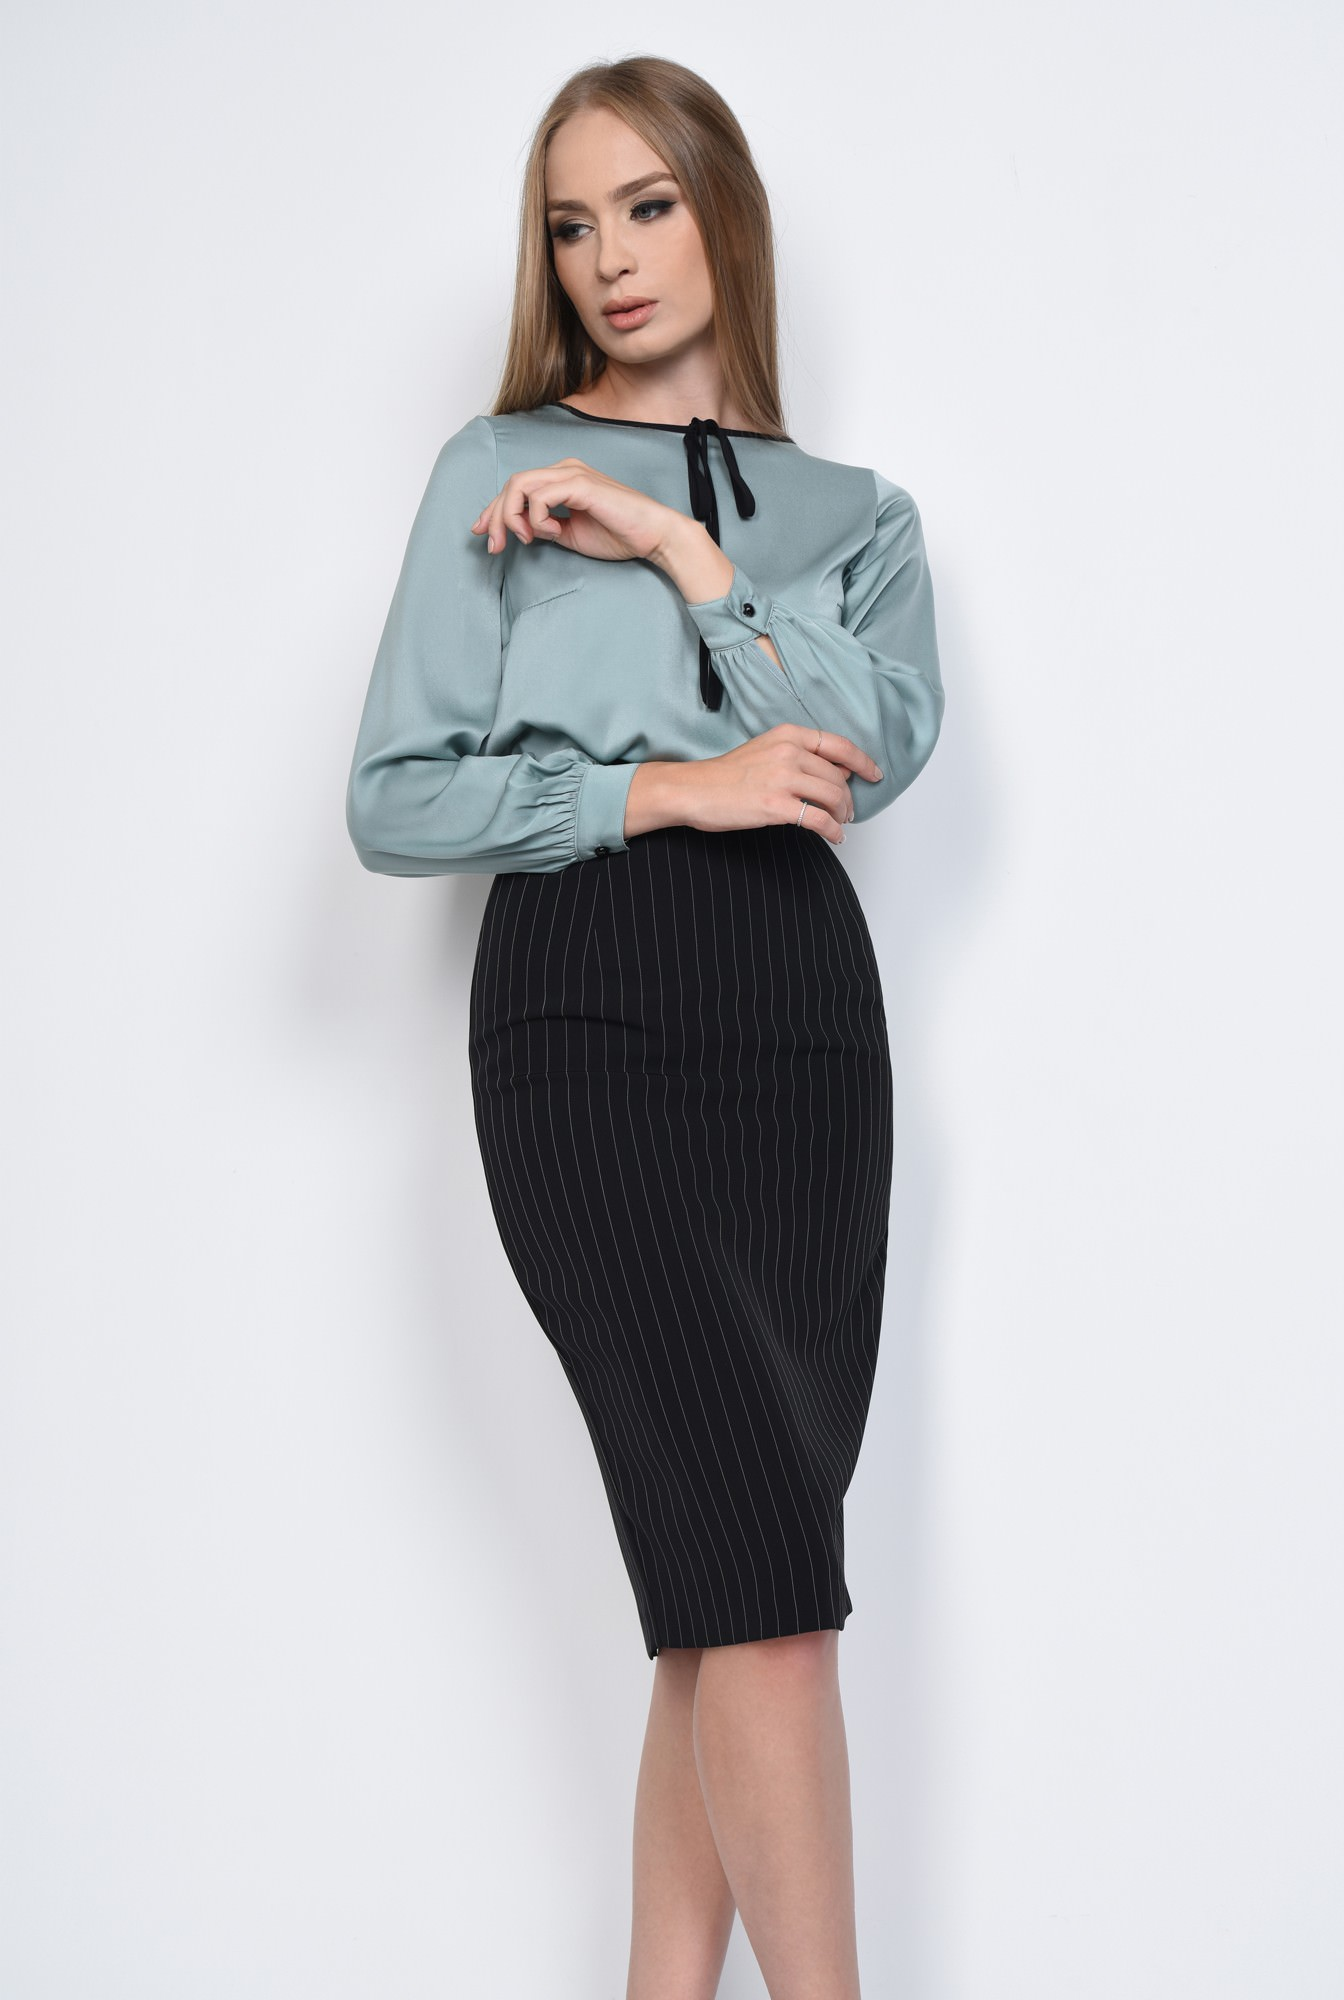 2 - BLUZA OFFICE BL 275-BLEU